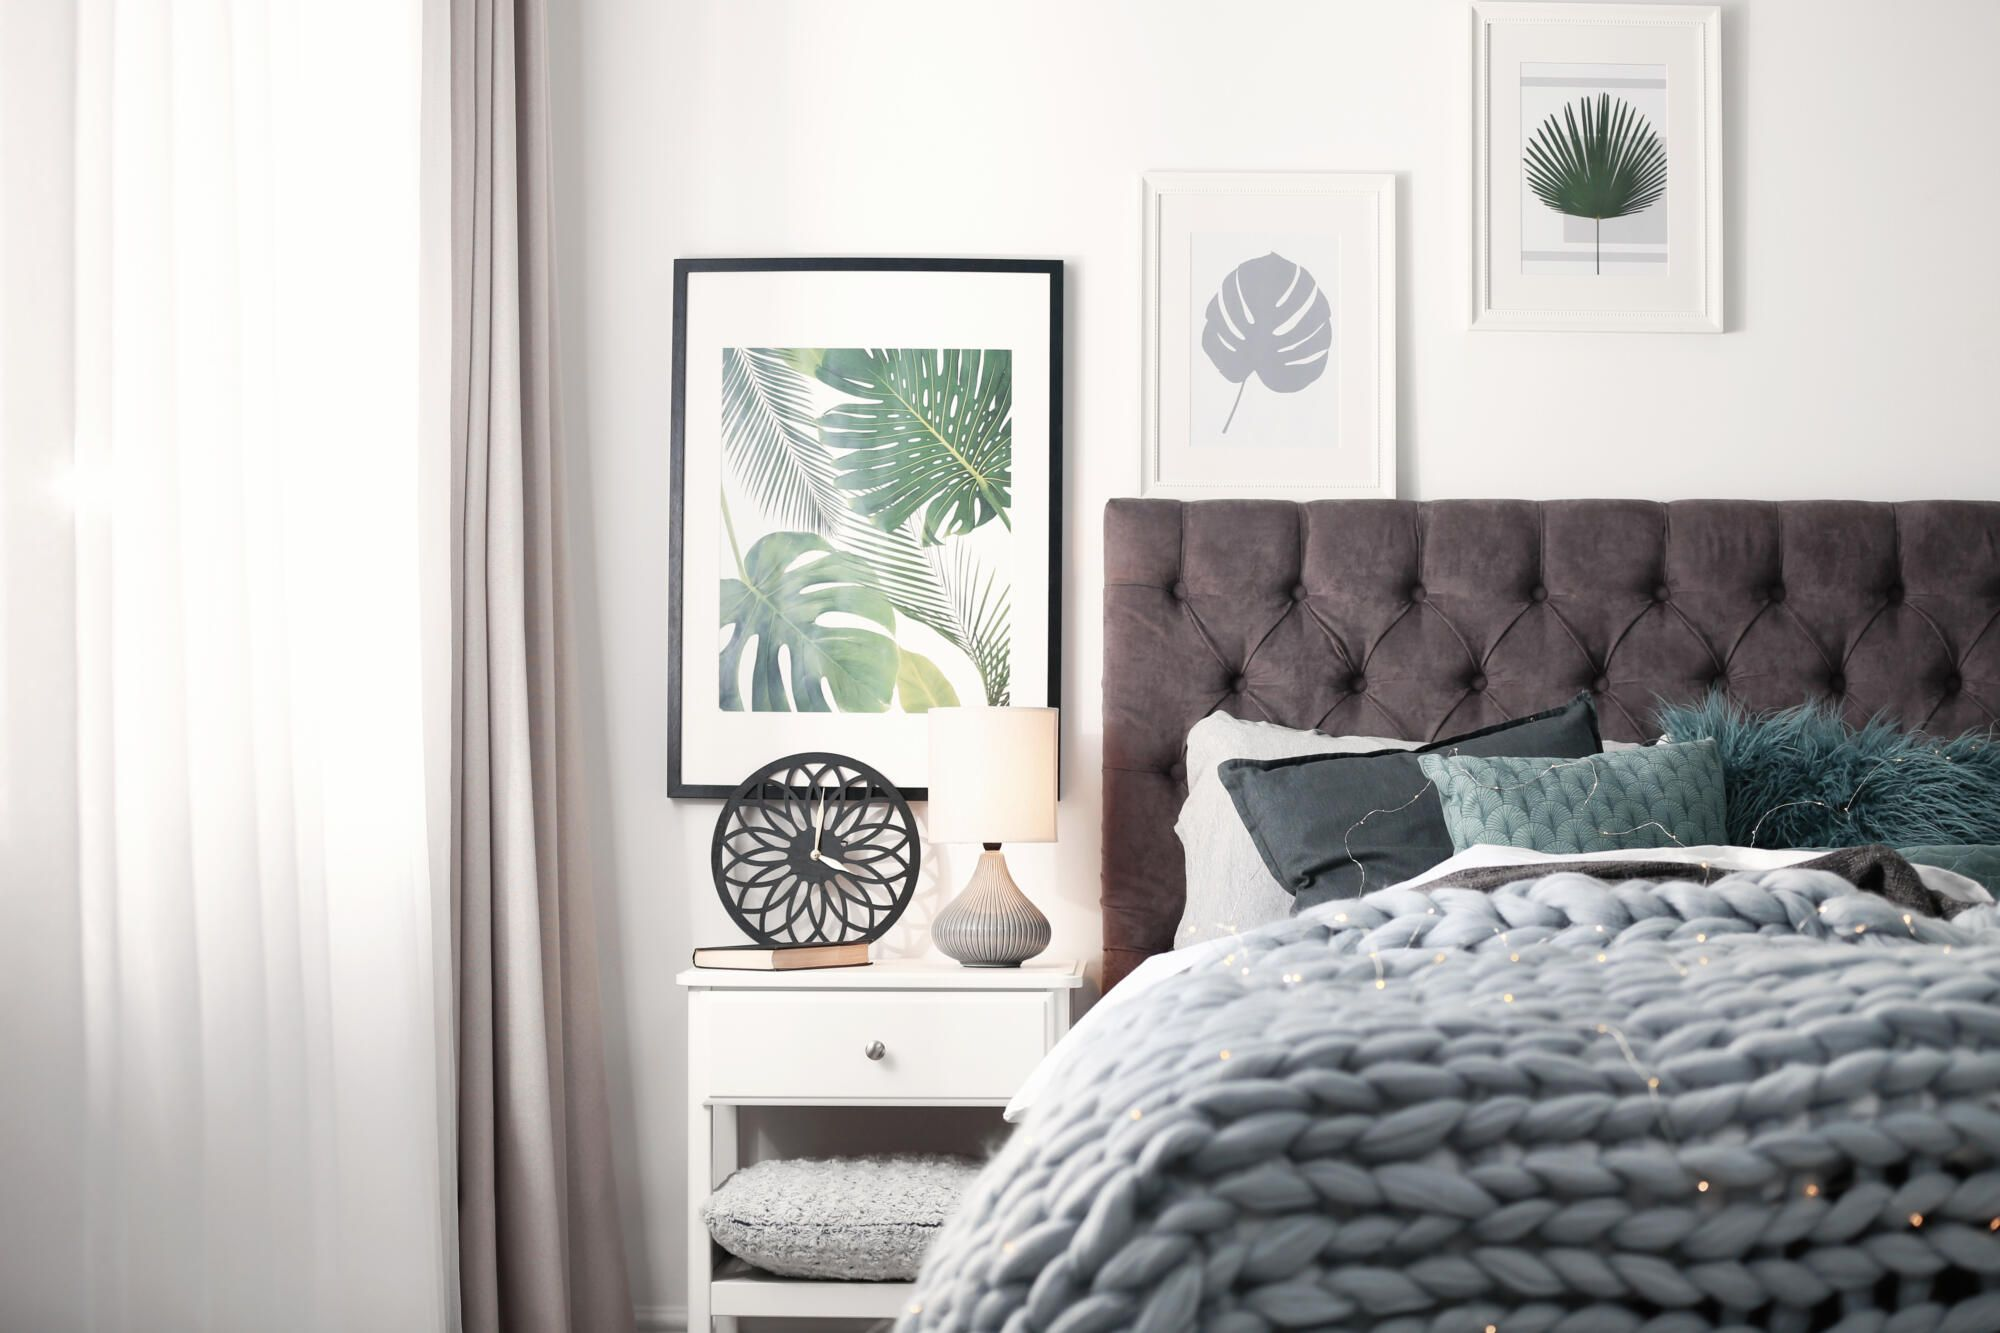 This Cozy Bedroom Decor Will Make You Want to Stay in Bed